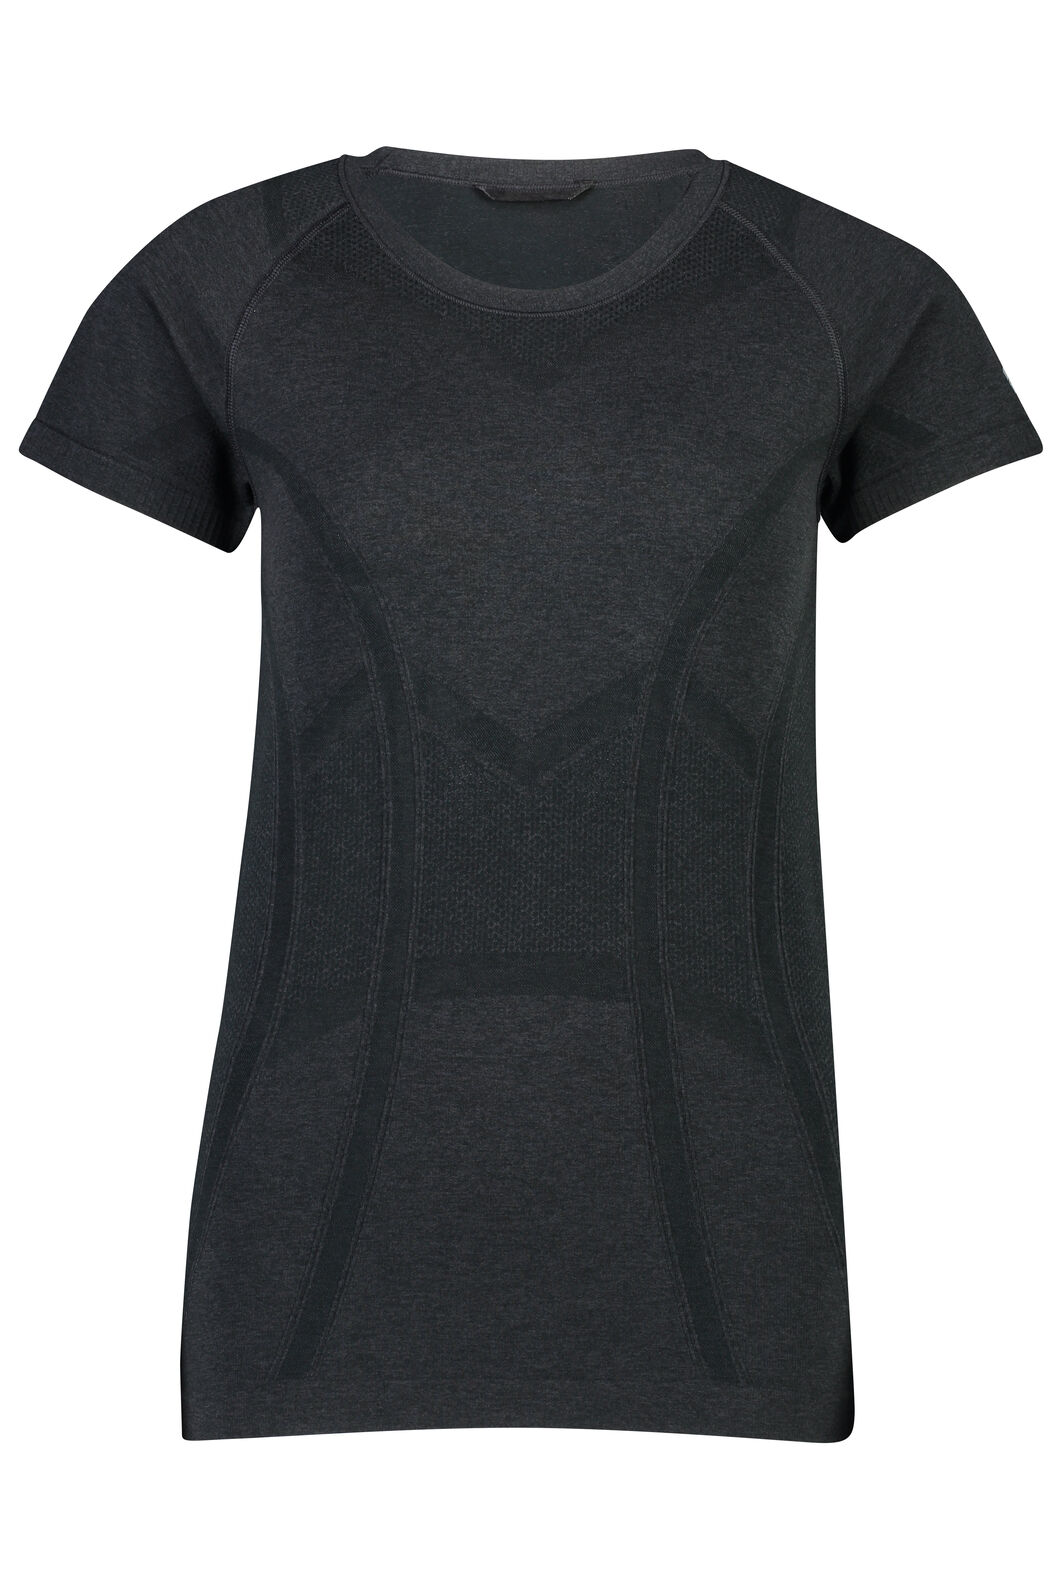 Macpac Limitless Short Sleeve Tee - Women's, Black, hi-res